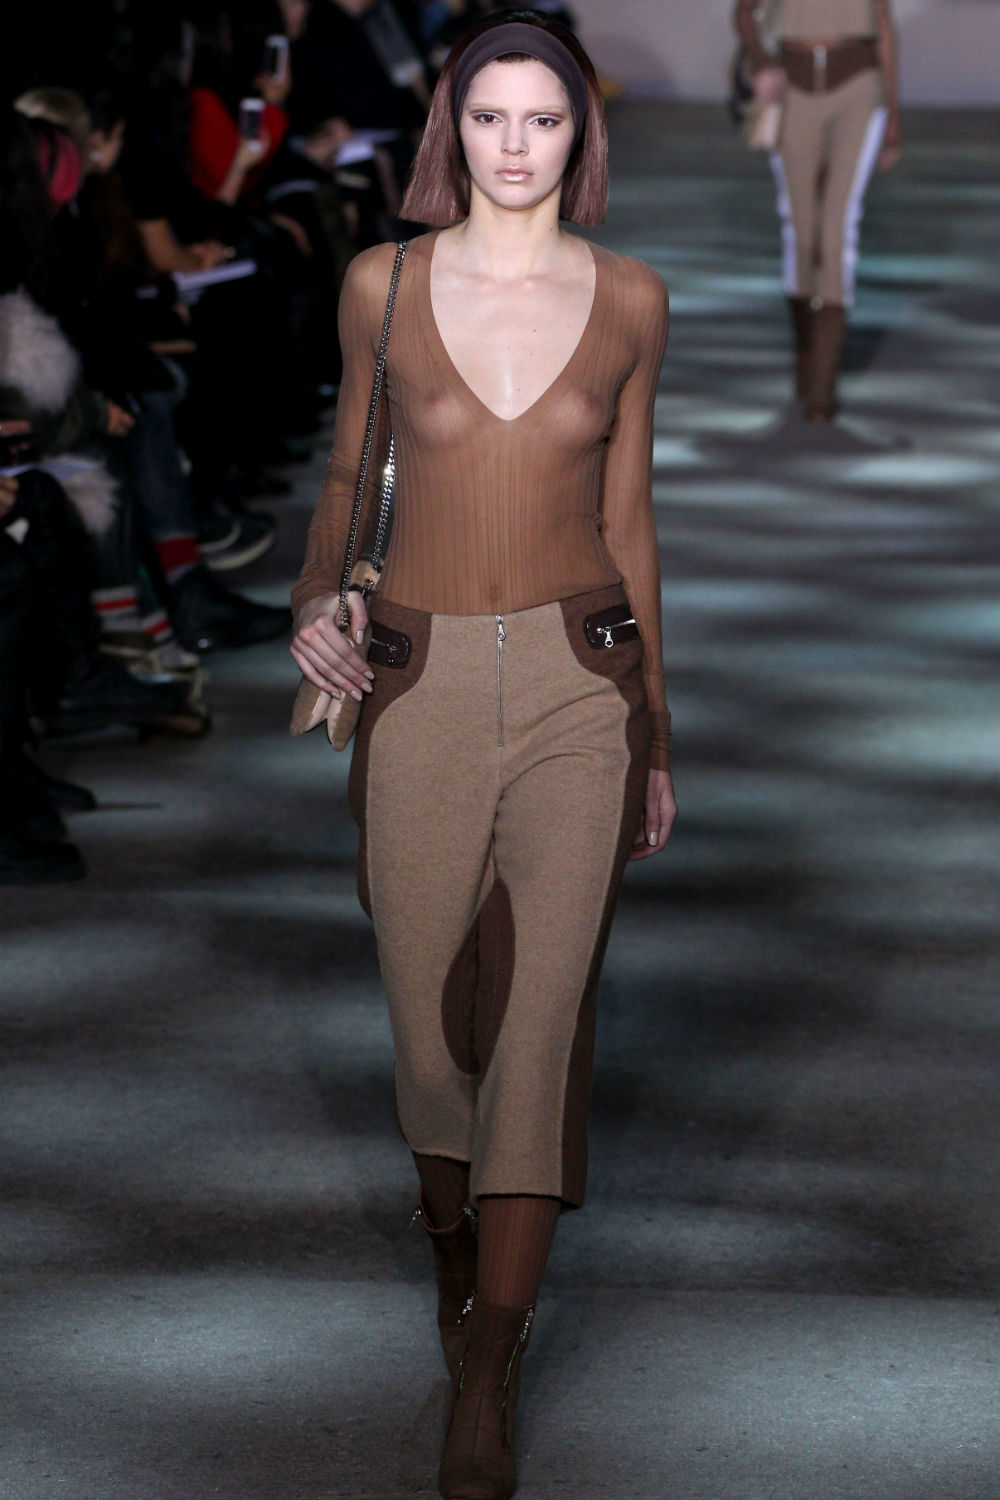 under 16 banned from fashion modeling Italian fashion designers have become the first in the world to ban size zero models from the catwalks stylists have signed a joint declaration with the italian government that in future shows all models will have a body mass index of 18.